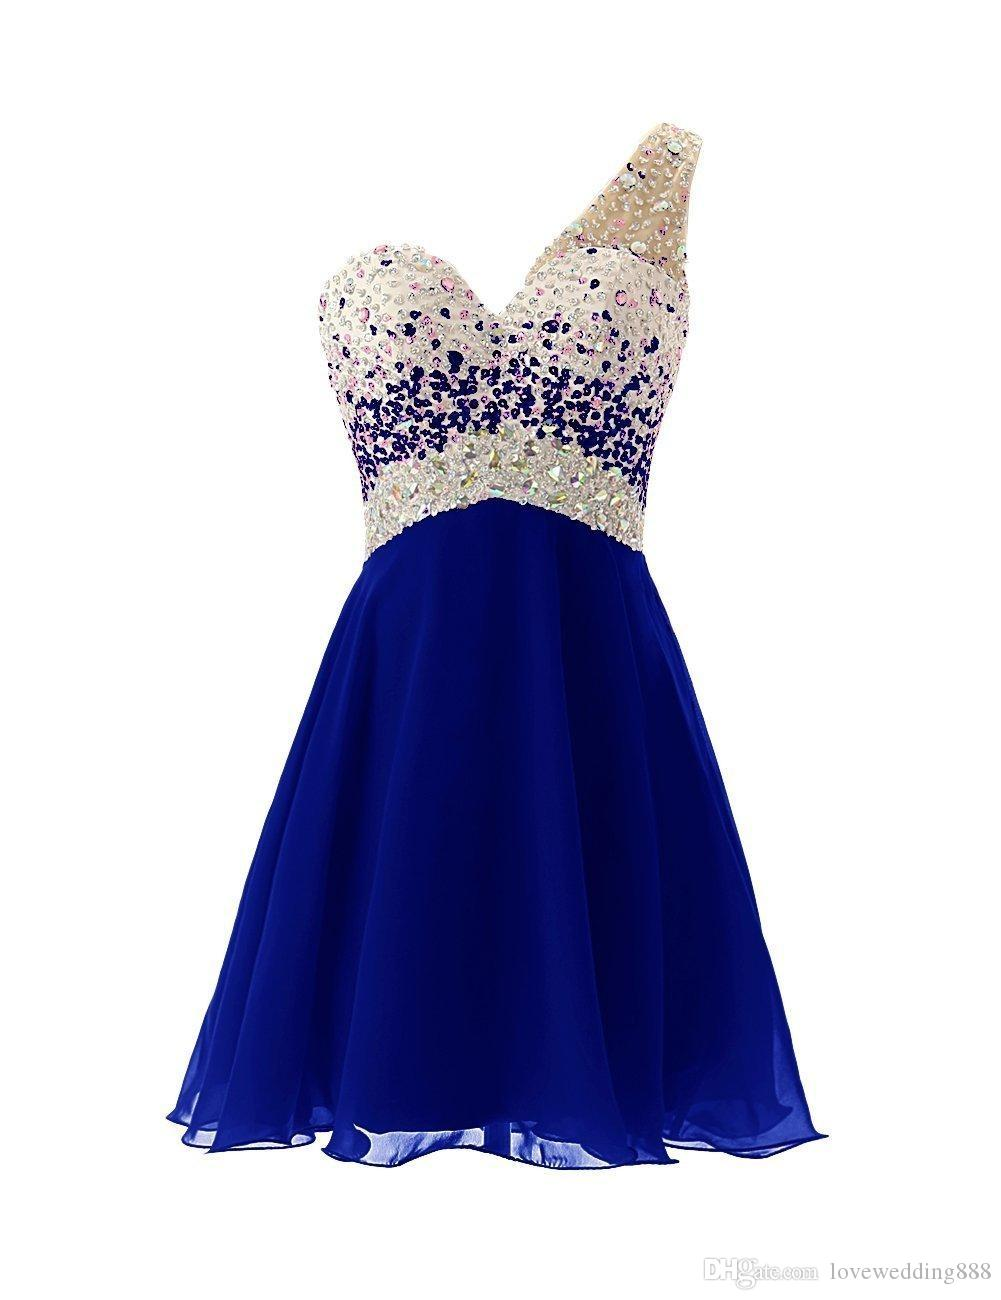 One Shoulder Short Homecoming Dresses A Line Chiffon Backless Crystals Beaded Sequin Under 100 Short Prom Party Dress Custom Made